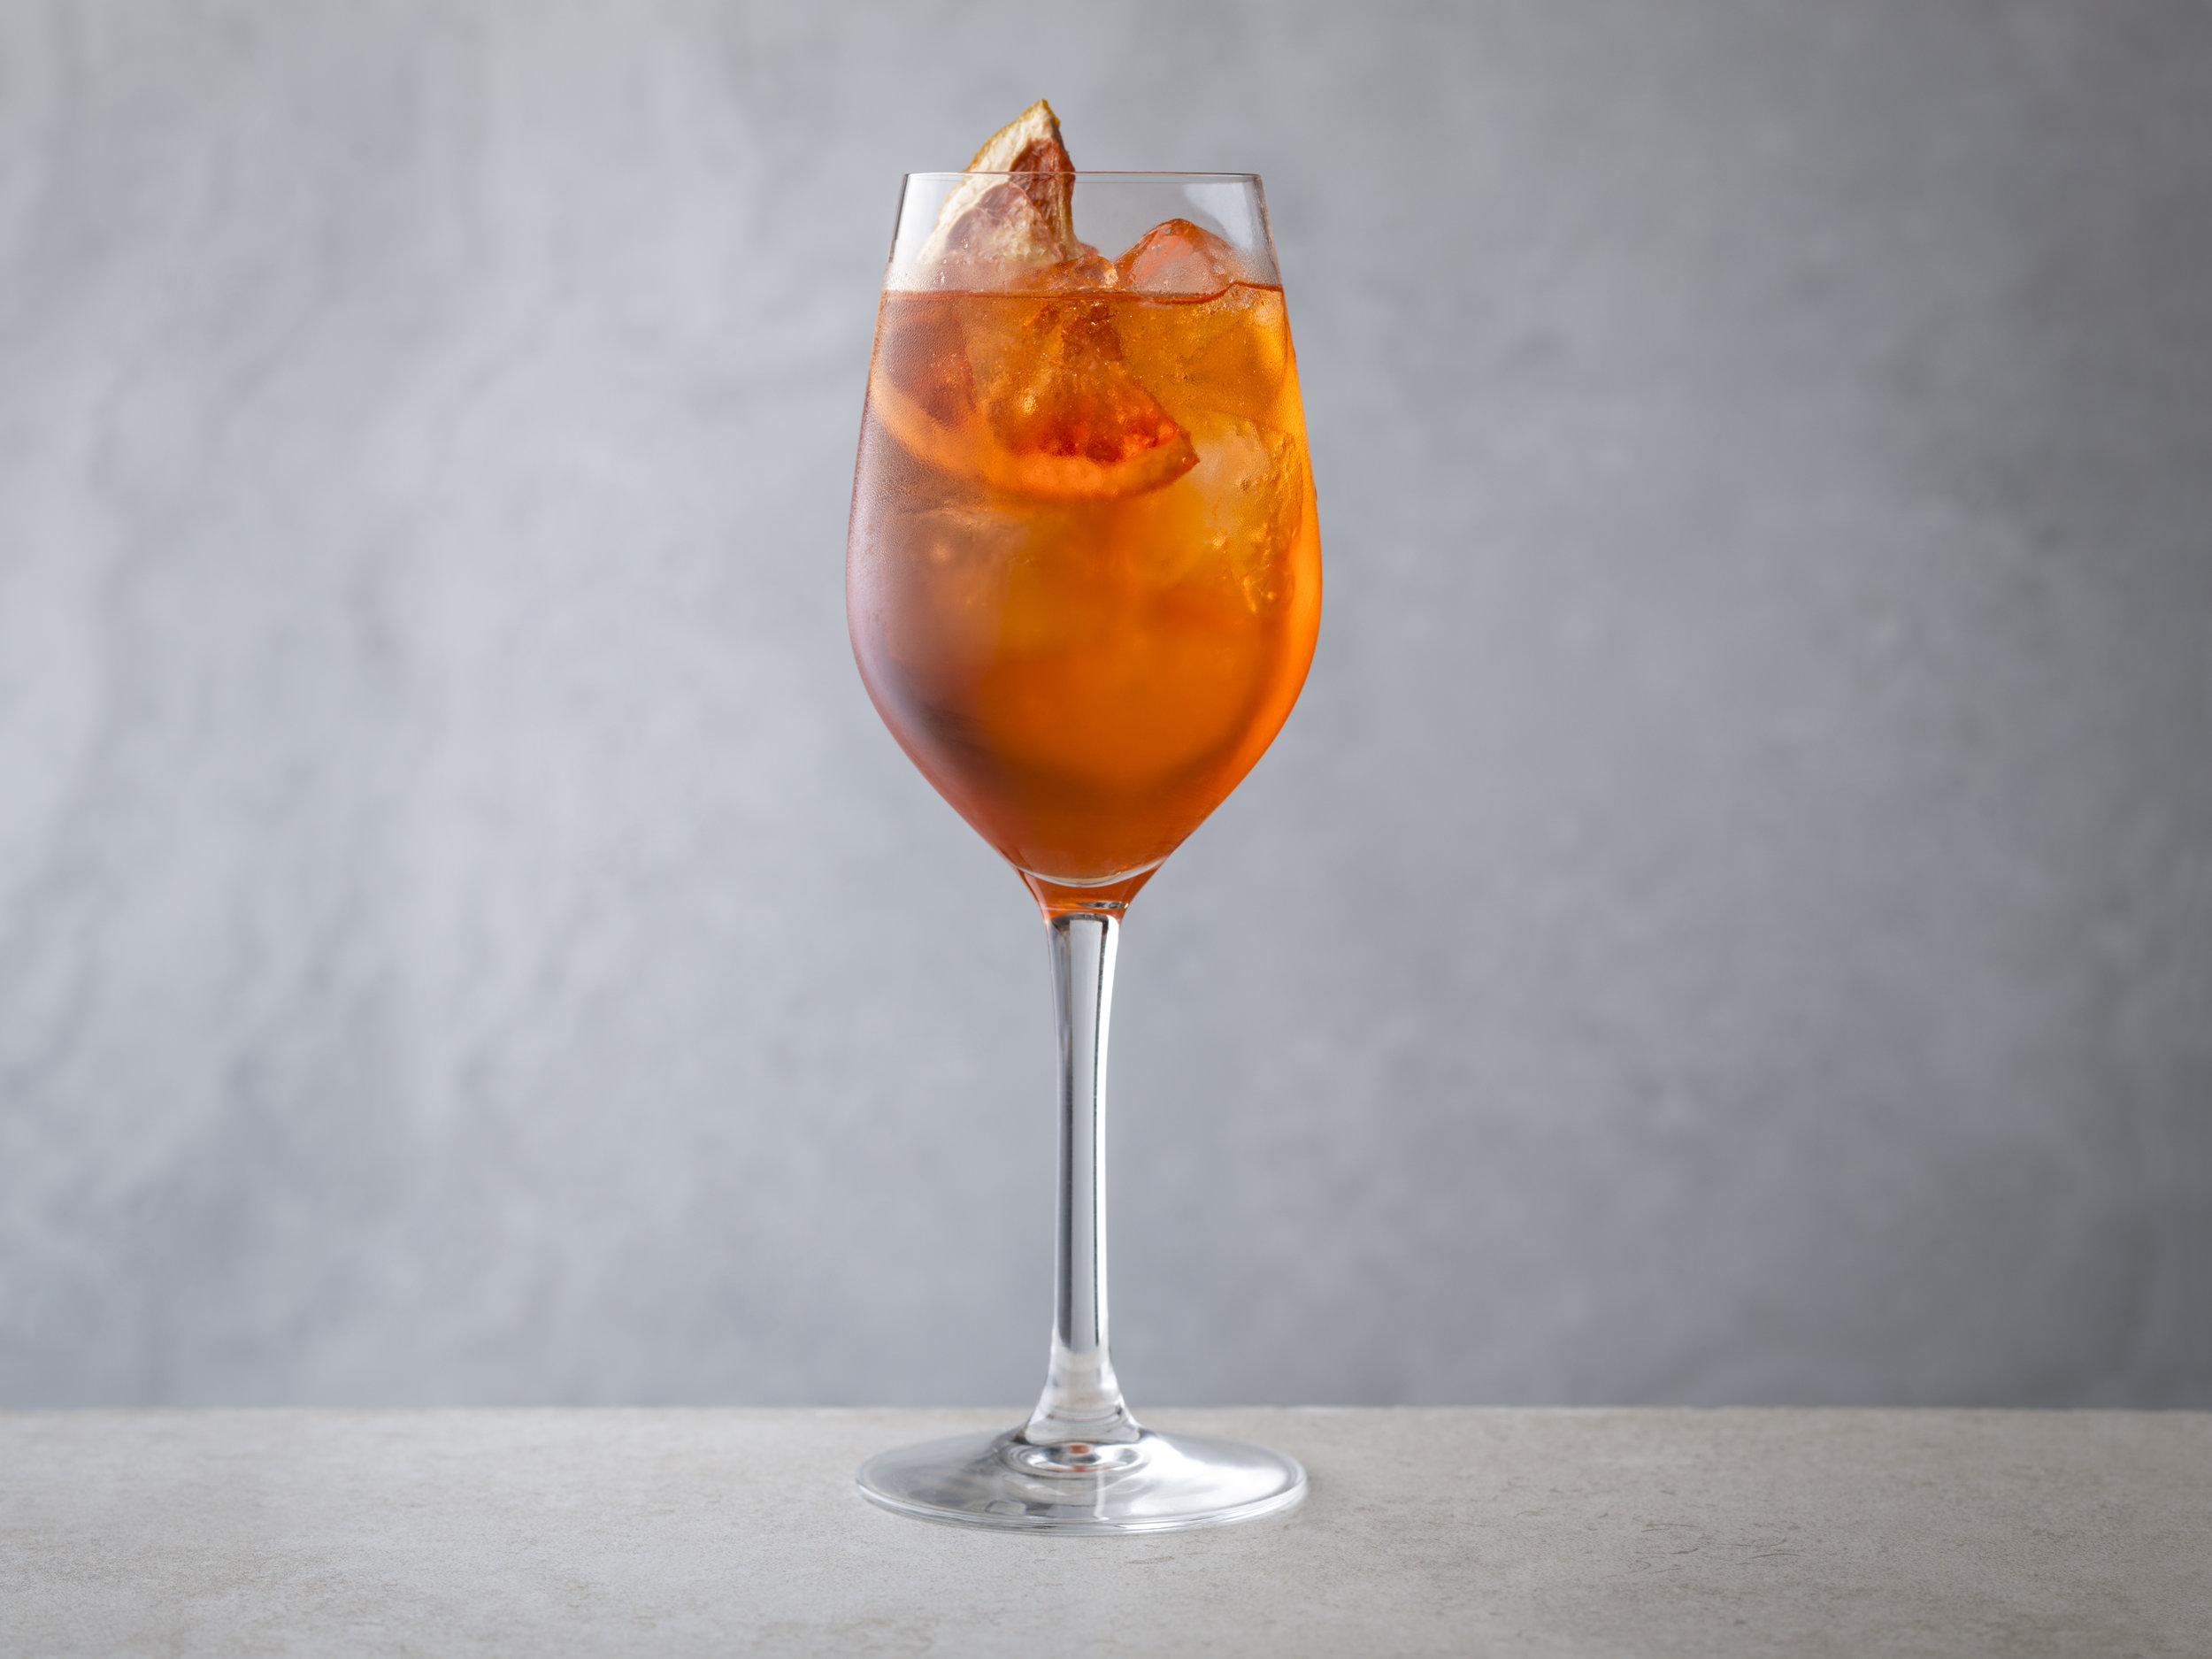 cocktail_aperol_spritz_0584.jpg